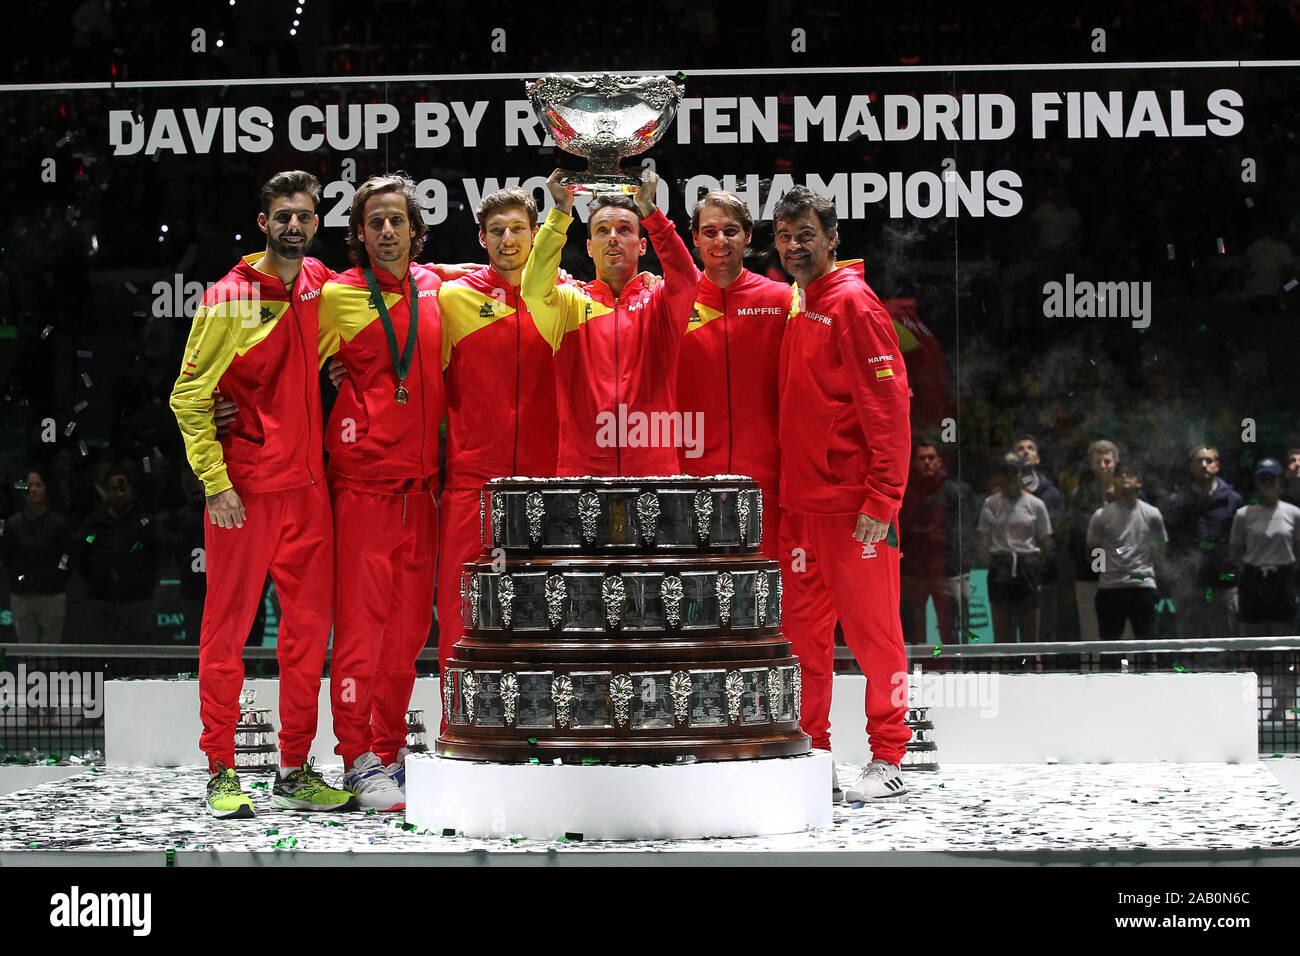 Madrid, Spain. 23rd Nov, 2019. Madrid Spain; 24/11/2019.- Spain, world champion of the Davis Cup of Tennis after beating the Canadian team, Rafael Nada, Roberto Bautista Agut, Pablo Carreño, Feliciano Lopez, Marcel Granollers, Sergi Bruguera capitan.King Felipe VI delivers the trophy. Credit: Juan Carlos Rojas/Picture Alliance. | usage worldwide/dpa/Alamy Live News Stock Photo